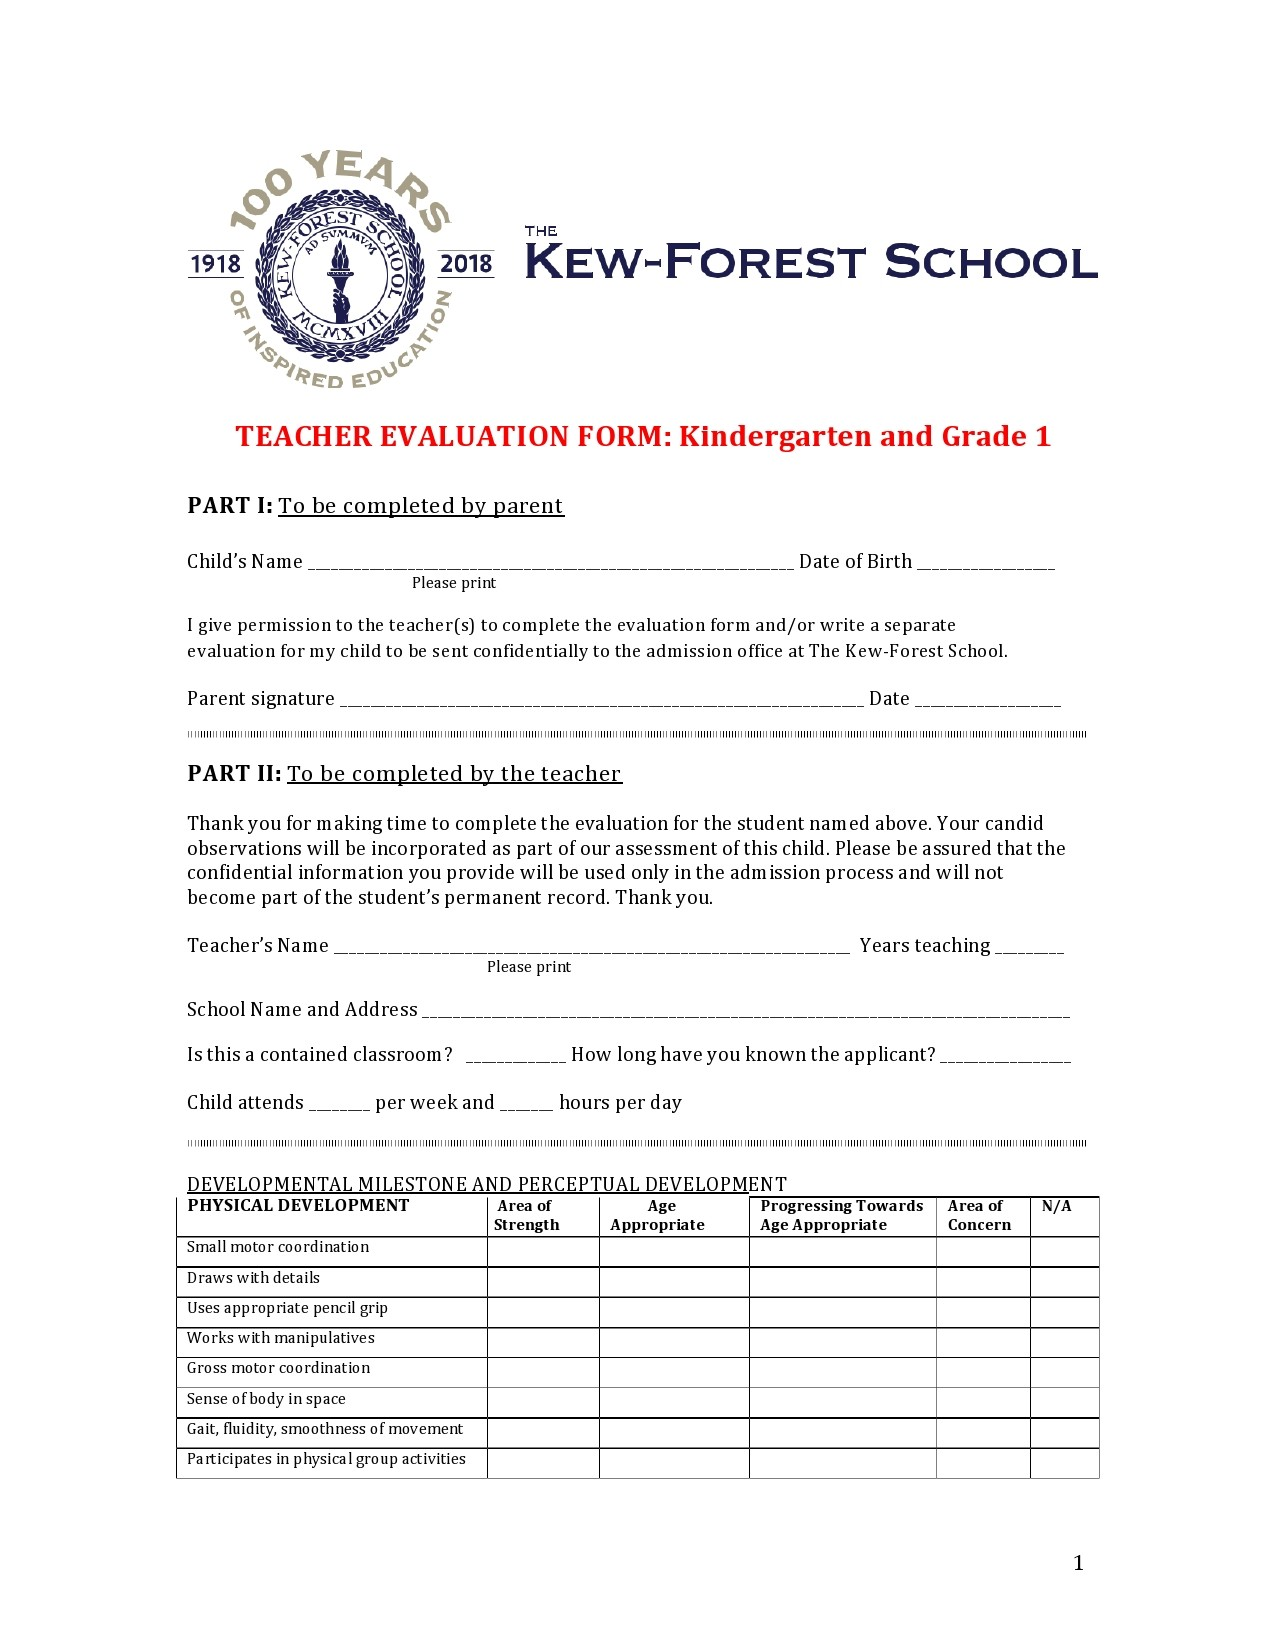 Free teacher evaluation form 19